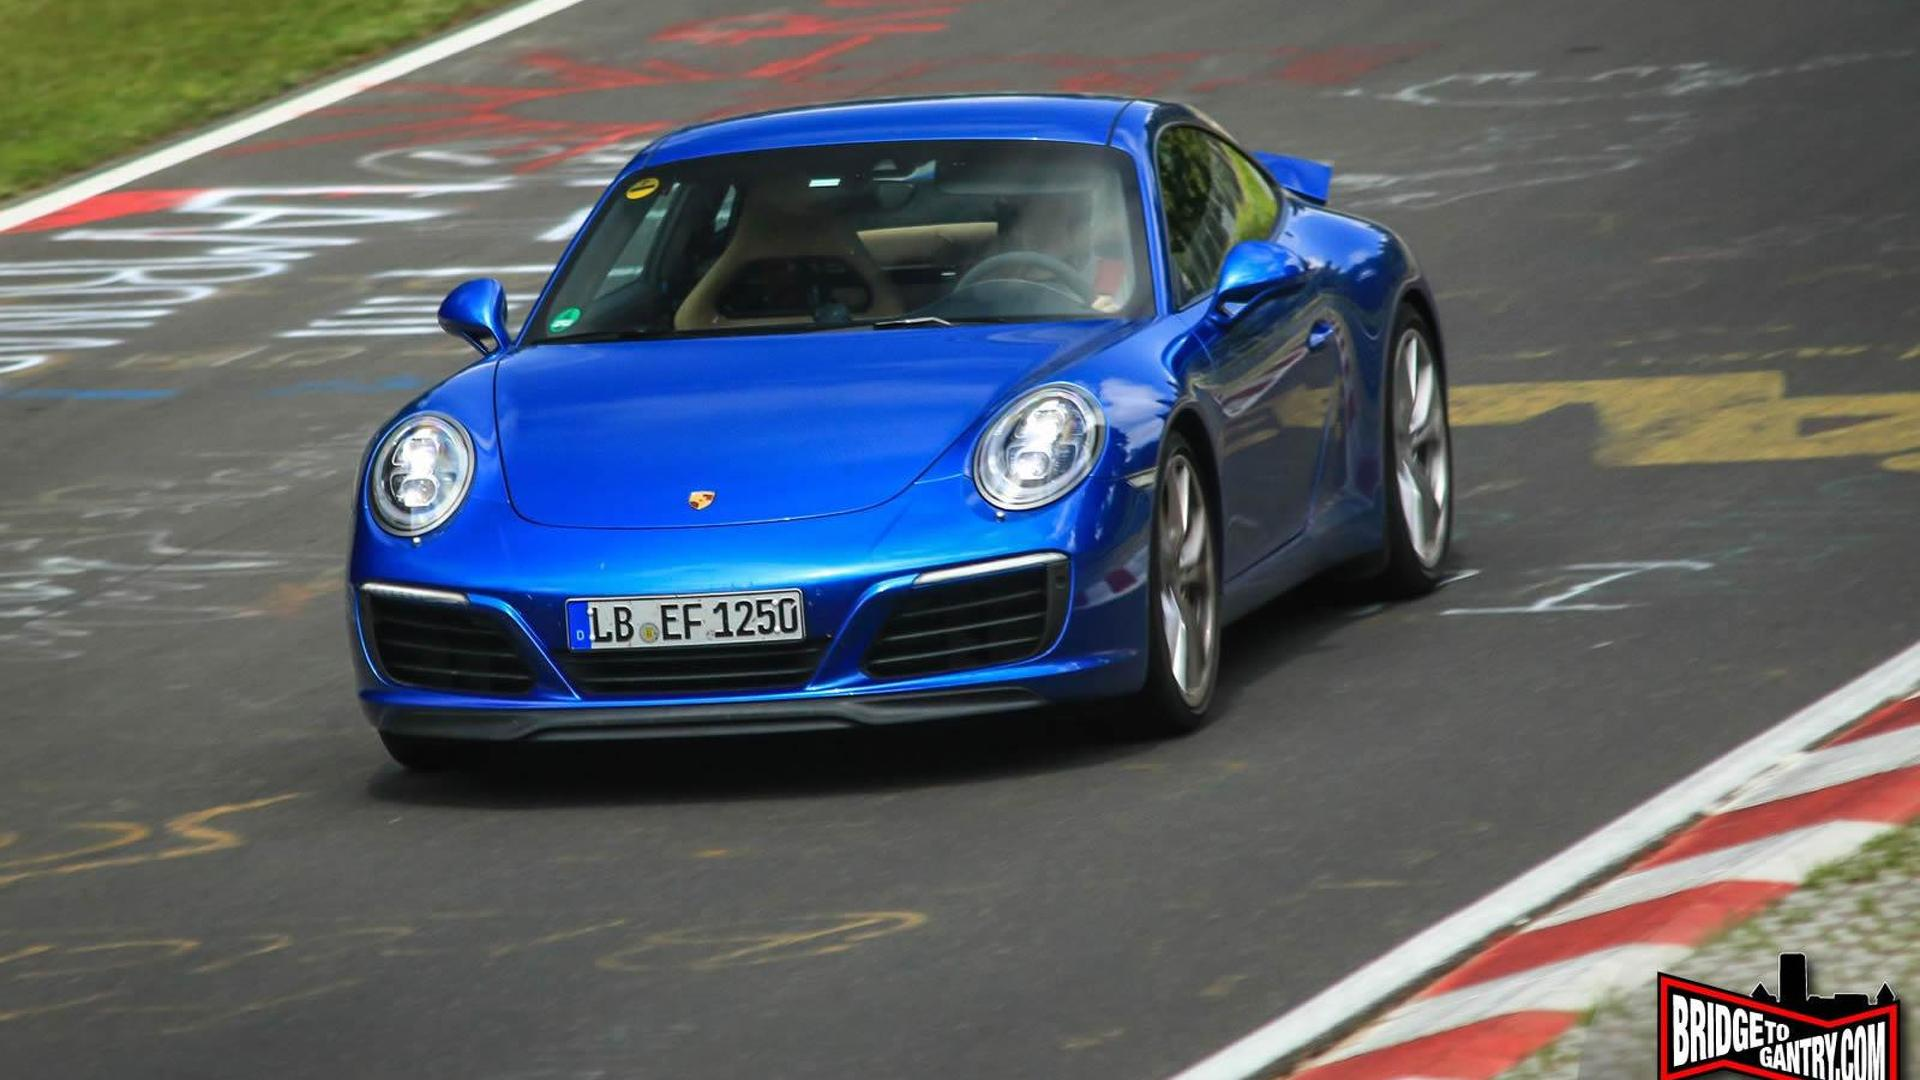 Undisguised 2016 Porsche 911 facelift (991.2) returns in most revealing spy shots yet